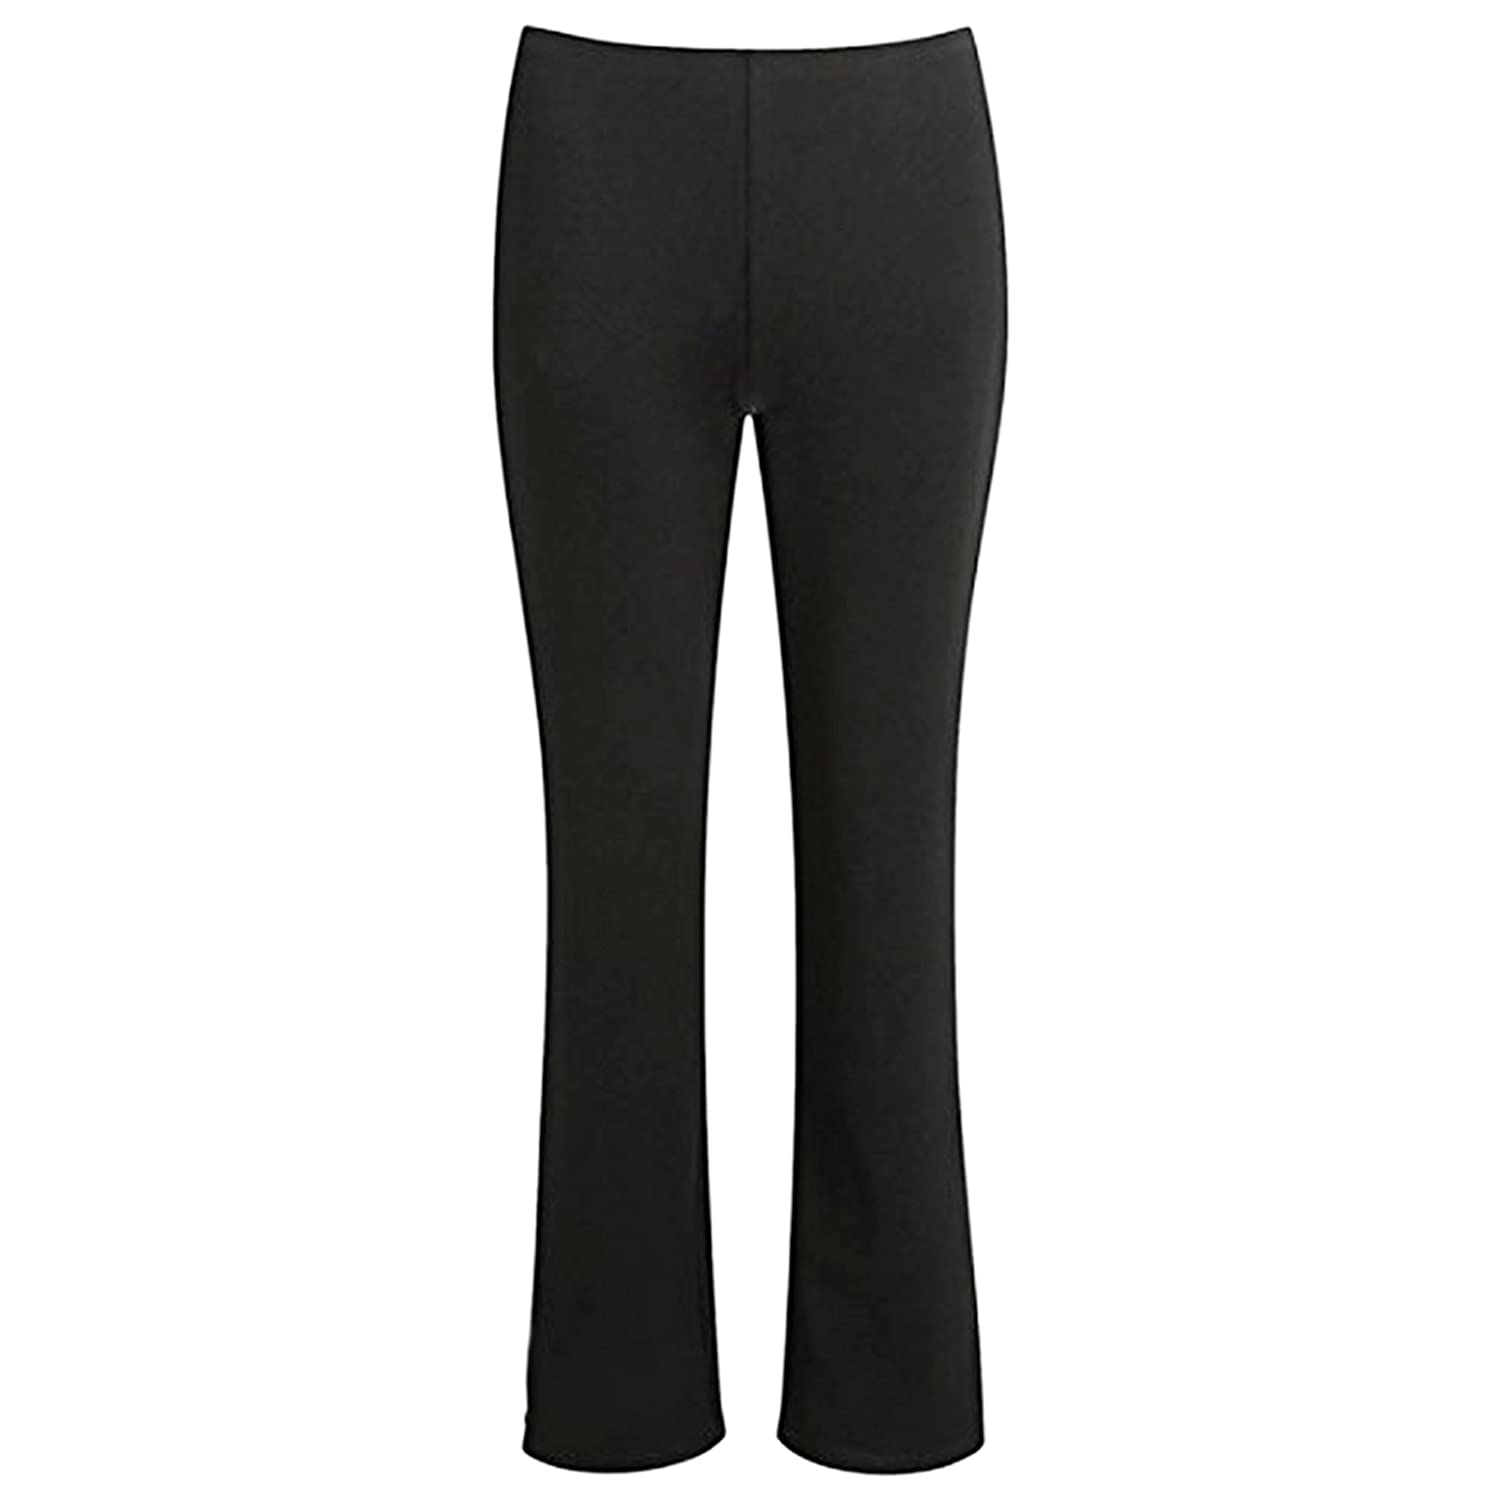 7a6ac55d9a0 MyShoeStore (Pack of 2 Ladies Bootleg Trousers Women Boot Cut High Rise  Stretch Soft Finely